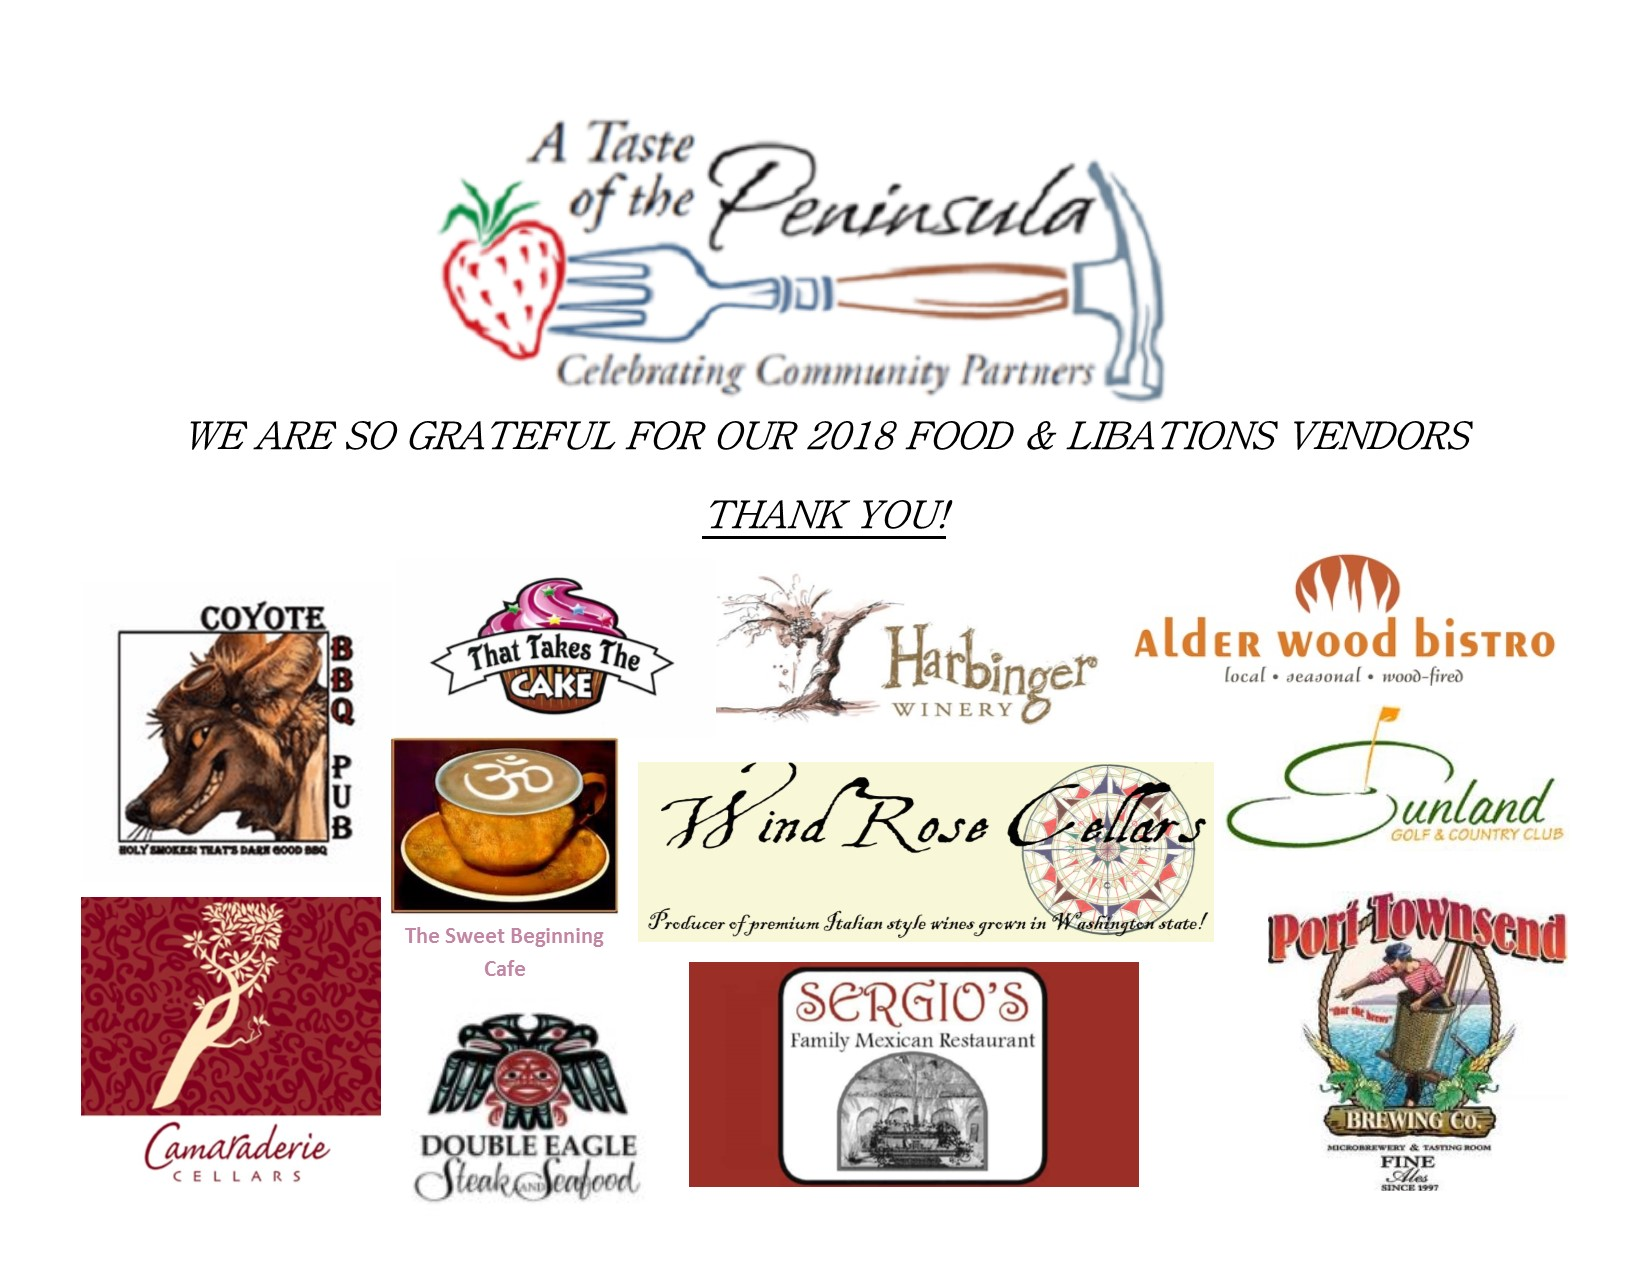 2018 A Taste of the Peninsula Food & Libations Vendors